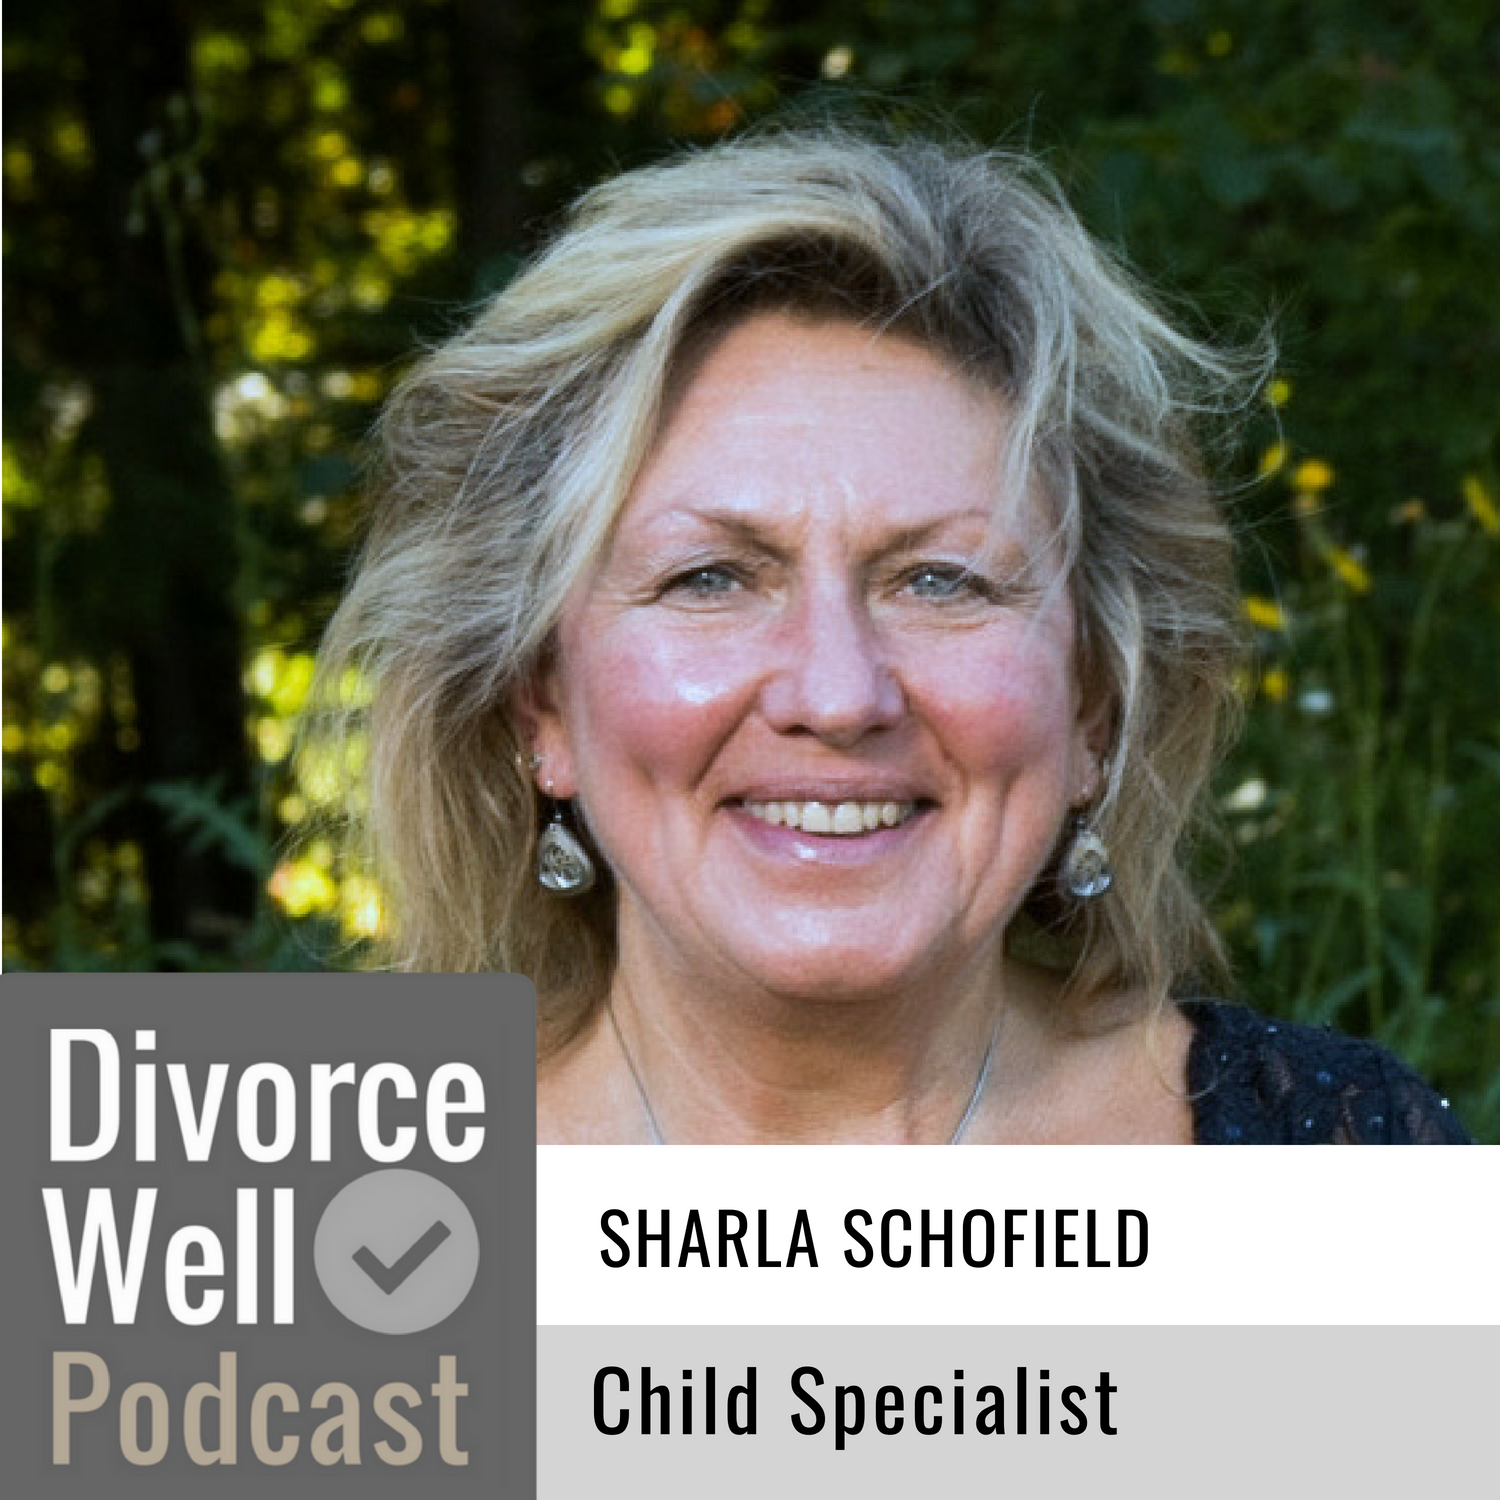 Sharla Schofield on the Divorce Well Podcast about using a child specialist during separation